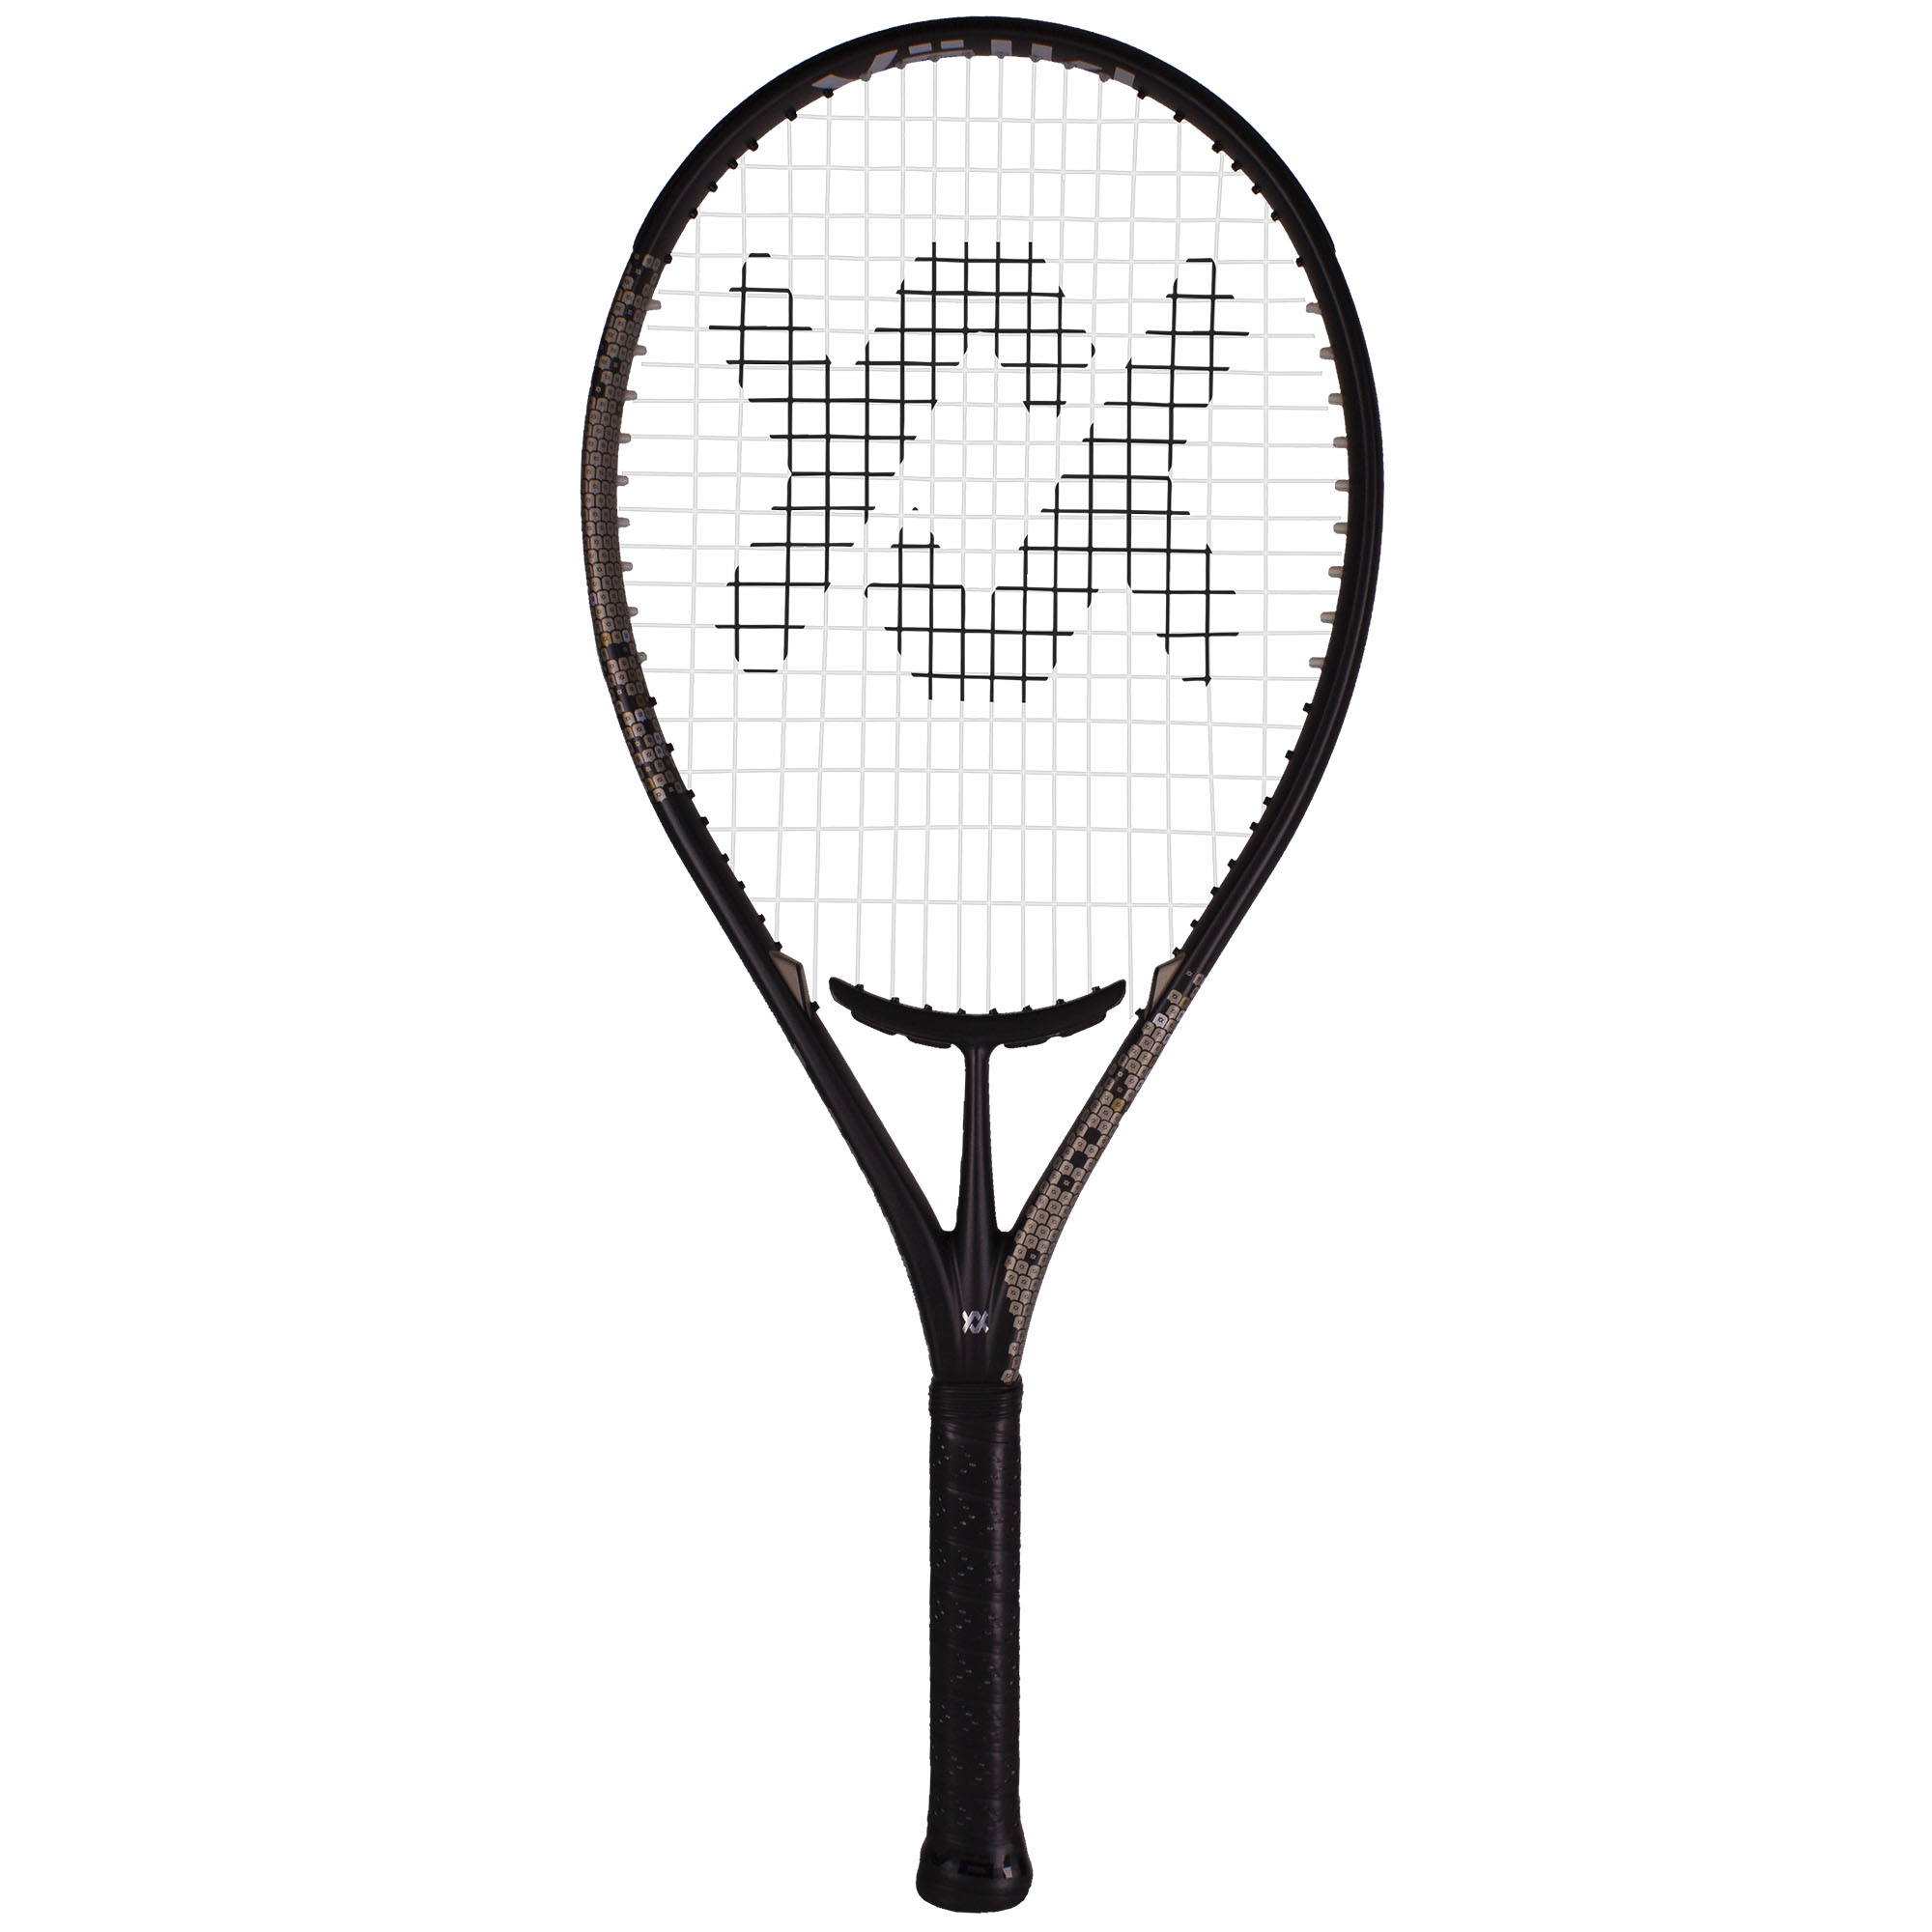 Volkl V-Feel 1 Tennis Racket - Grip 4